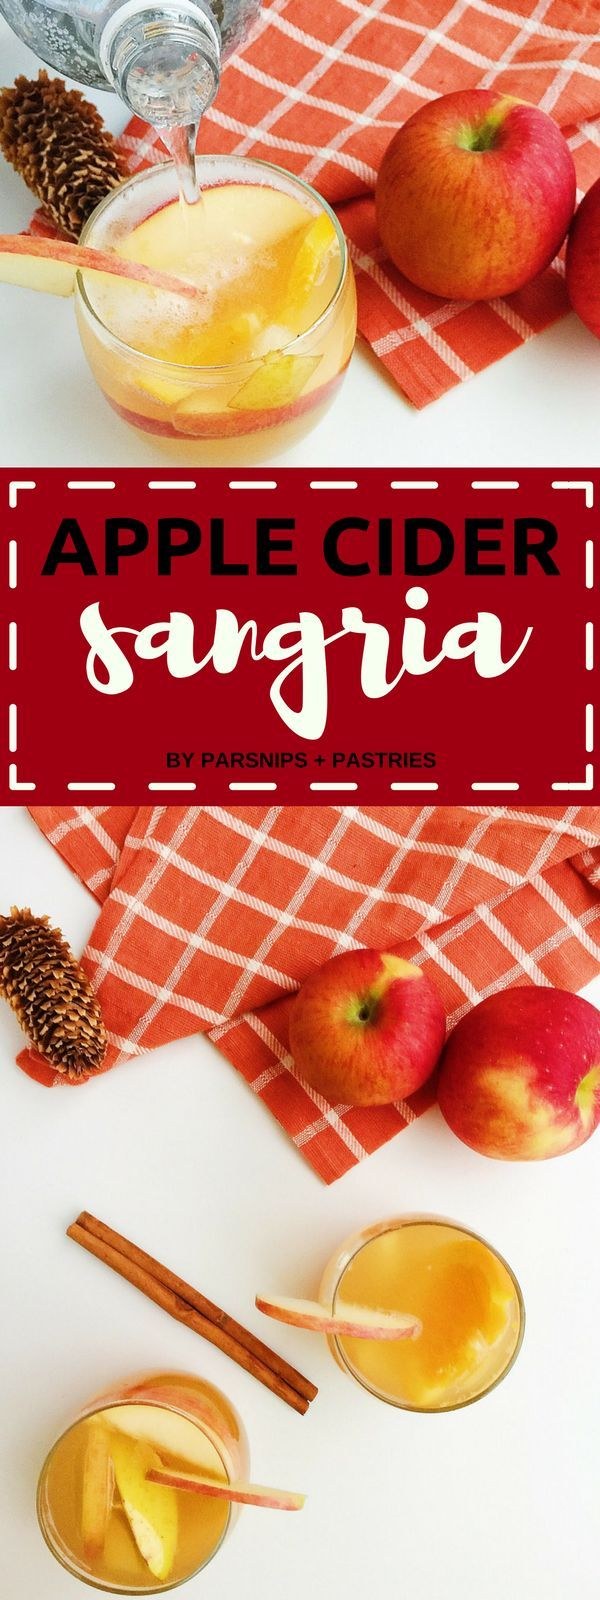 This Apple Cider Sangria is the perfect fall drink. Made with spiced apple cider, white wine, fresh fruit, brandy, and warm autumn spices. Cheers!